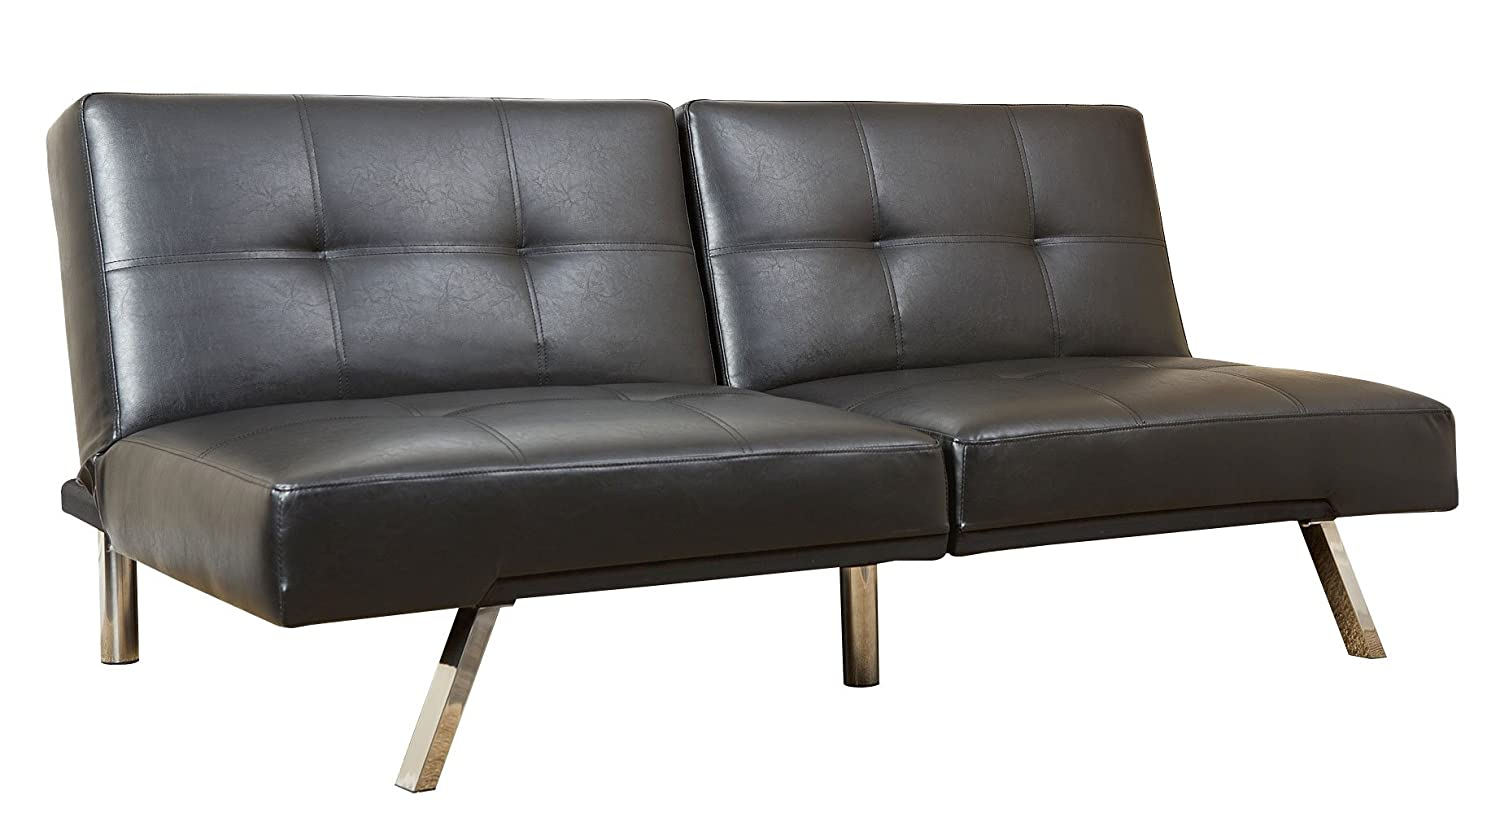 Amazon.com: Abbyson Zara Bonded Leather Convertible Sofa, Black ...